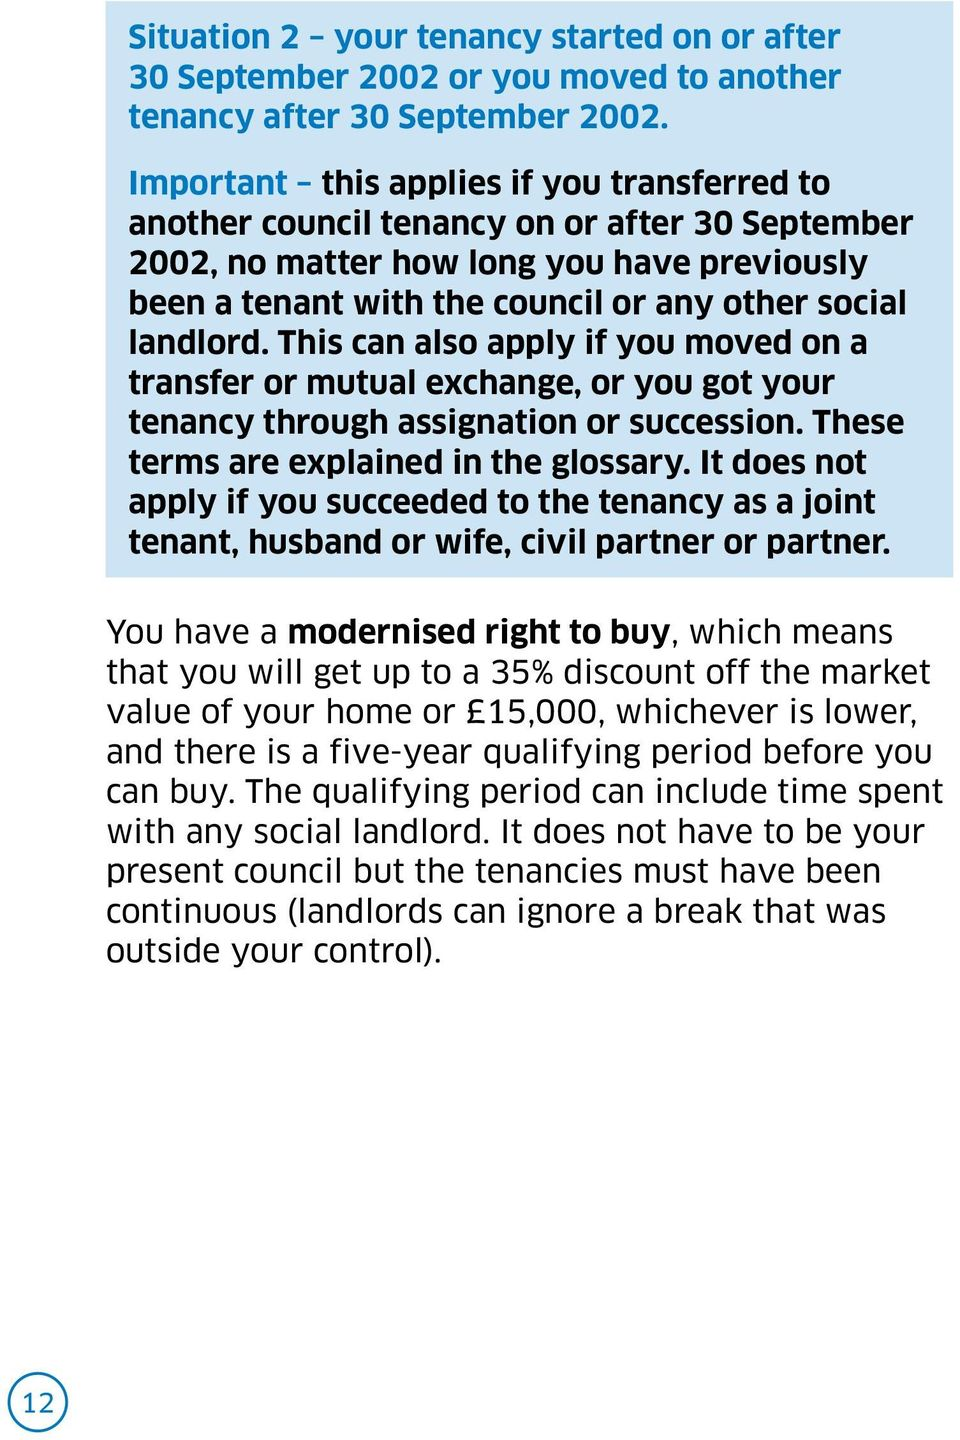 This can also apply if you moved on a transfer or mutual exchange, or you got your tenancy through assignation or succession. These terms are explained in the glossary.